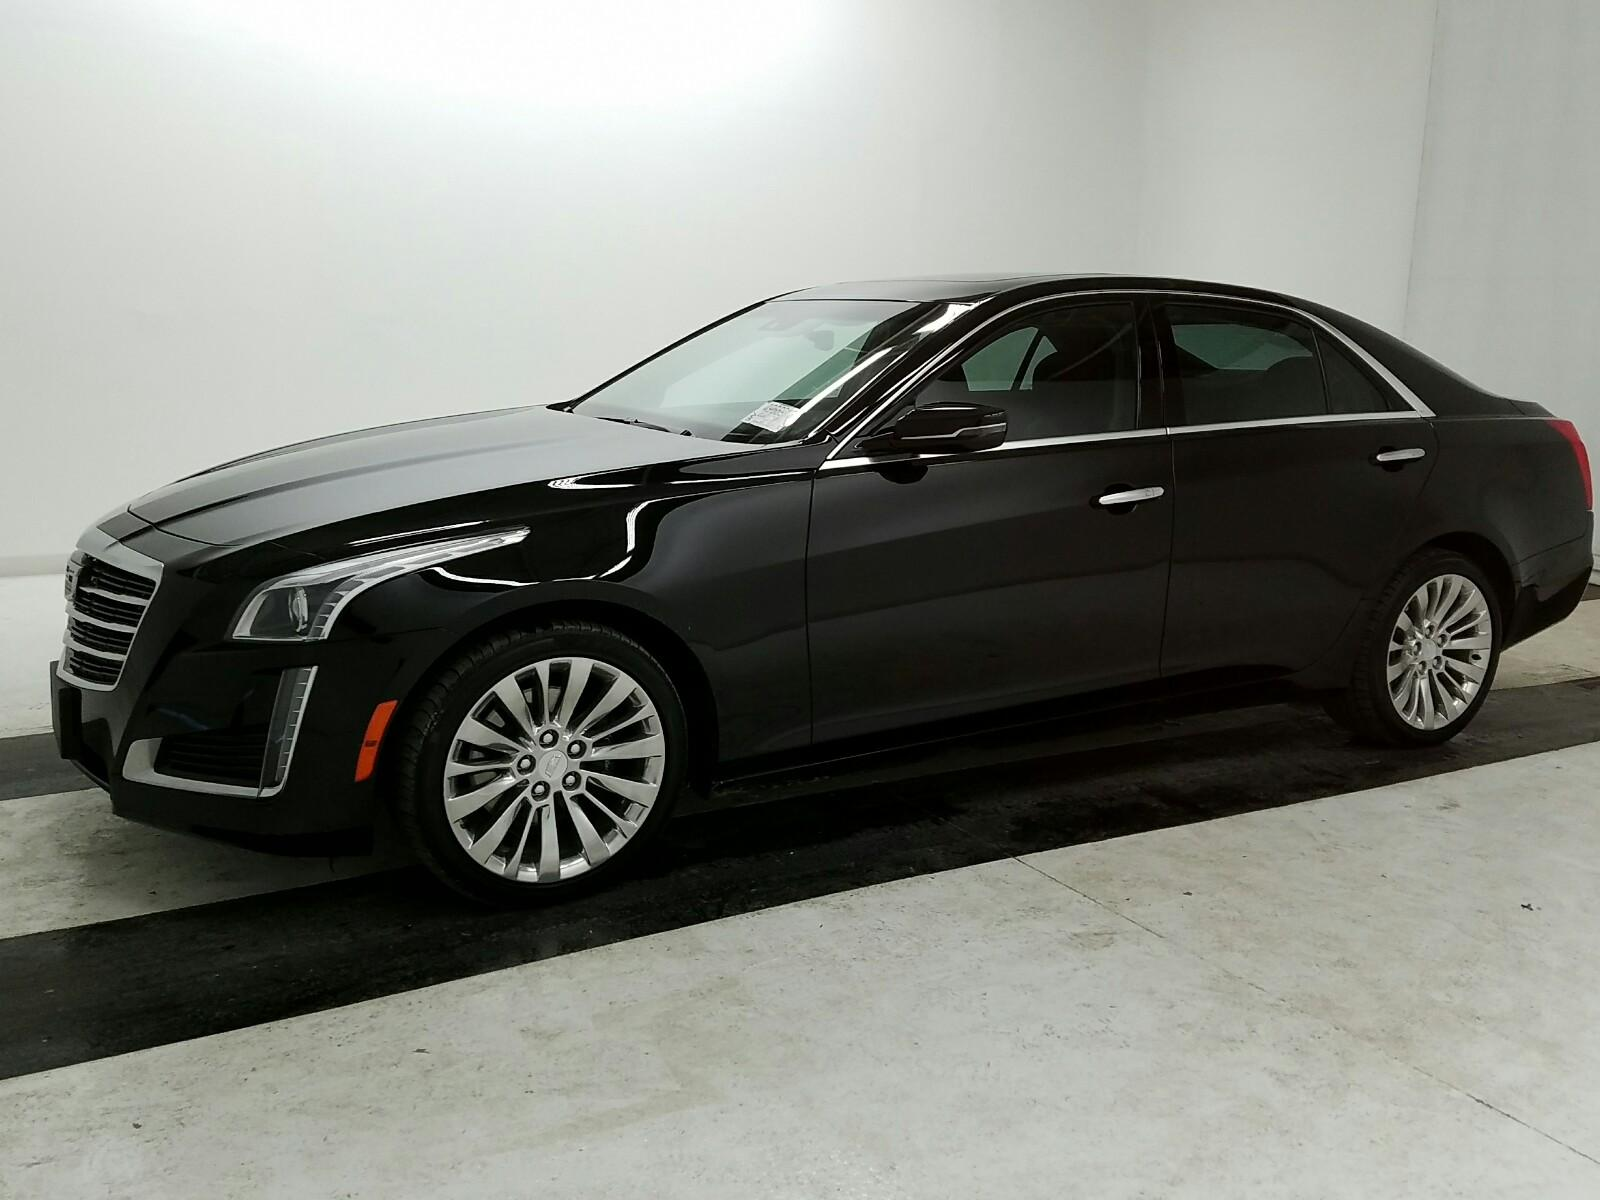 2015 cadillac cts awd v6 luxury awd benzoauto. Black Bedroom Furniture Sets. Home Design Ideas